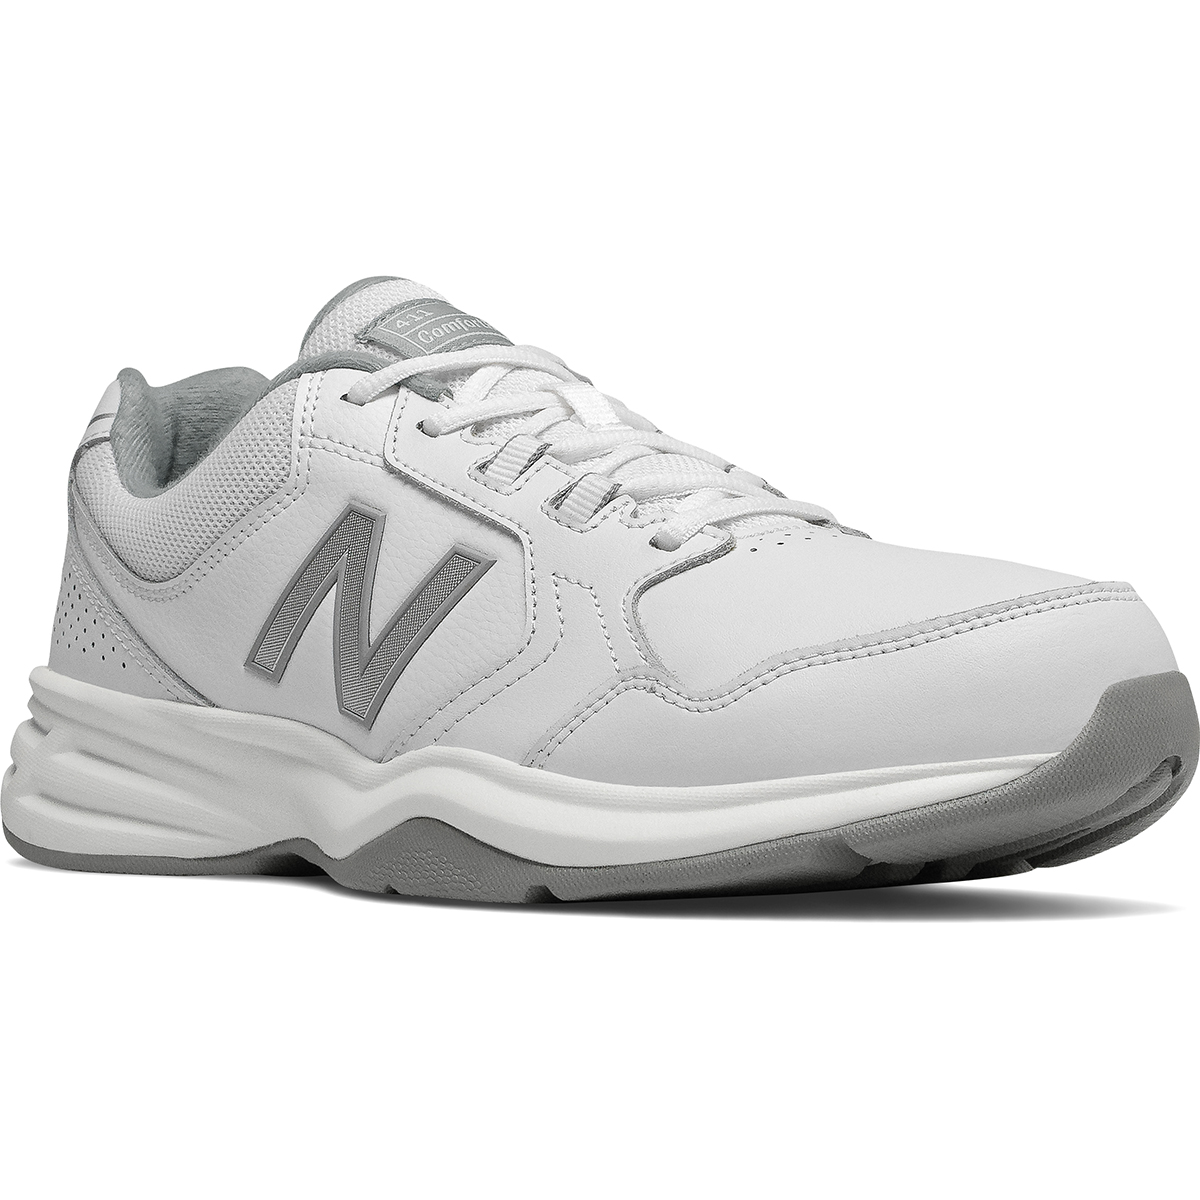 New Balance Men's 411 Walking Shoes, Wide - White, 8.5